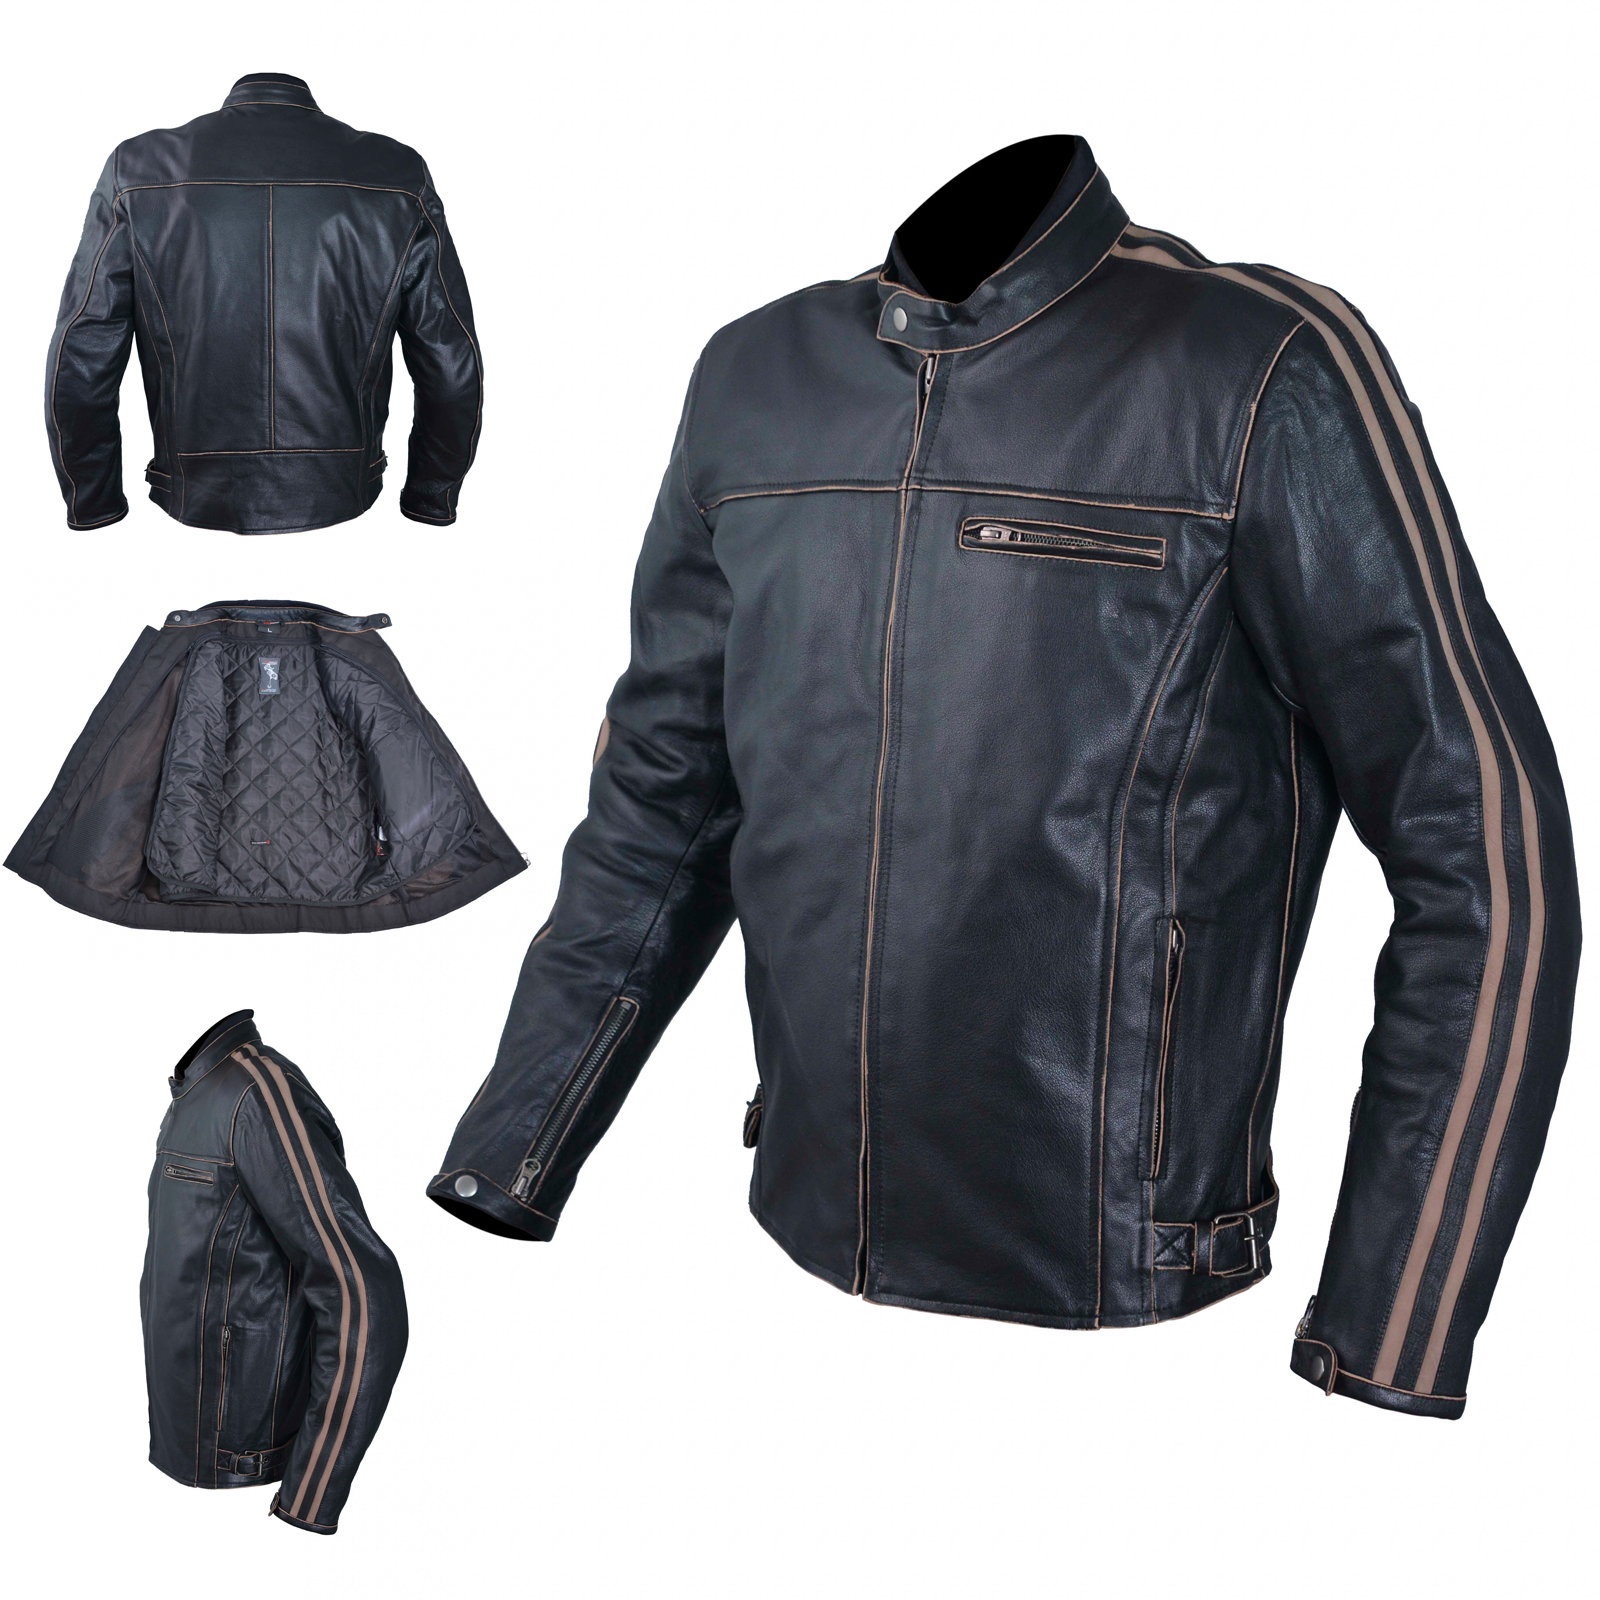 cuir blouson moto veste vintage style thermique. Black Bedroom Furniture Sets. Home Design Ideas